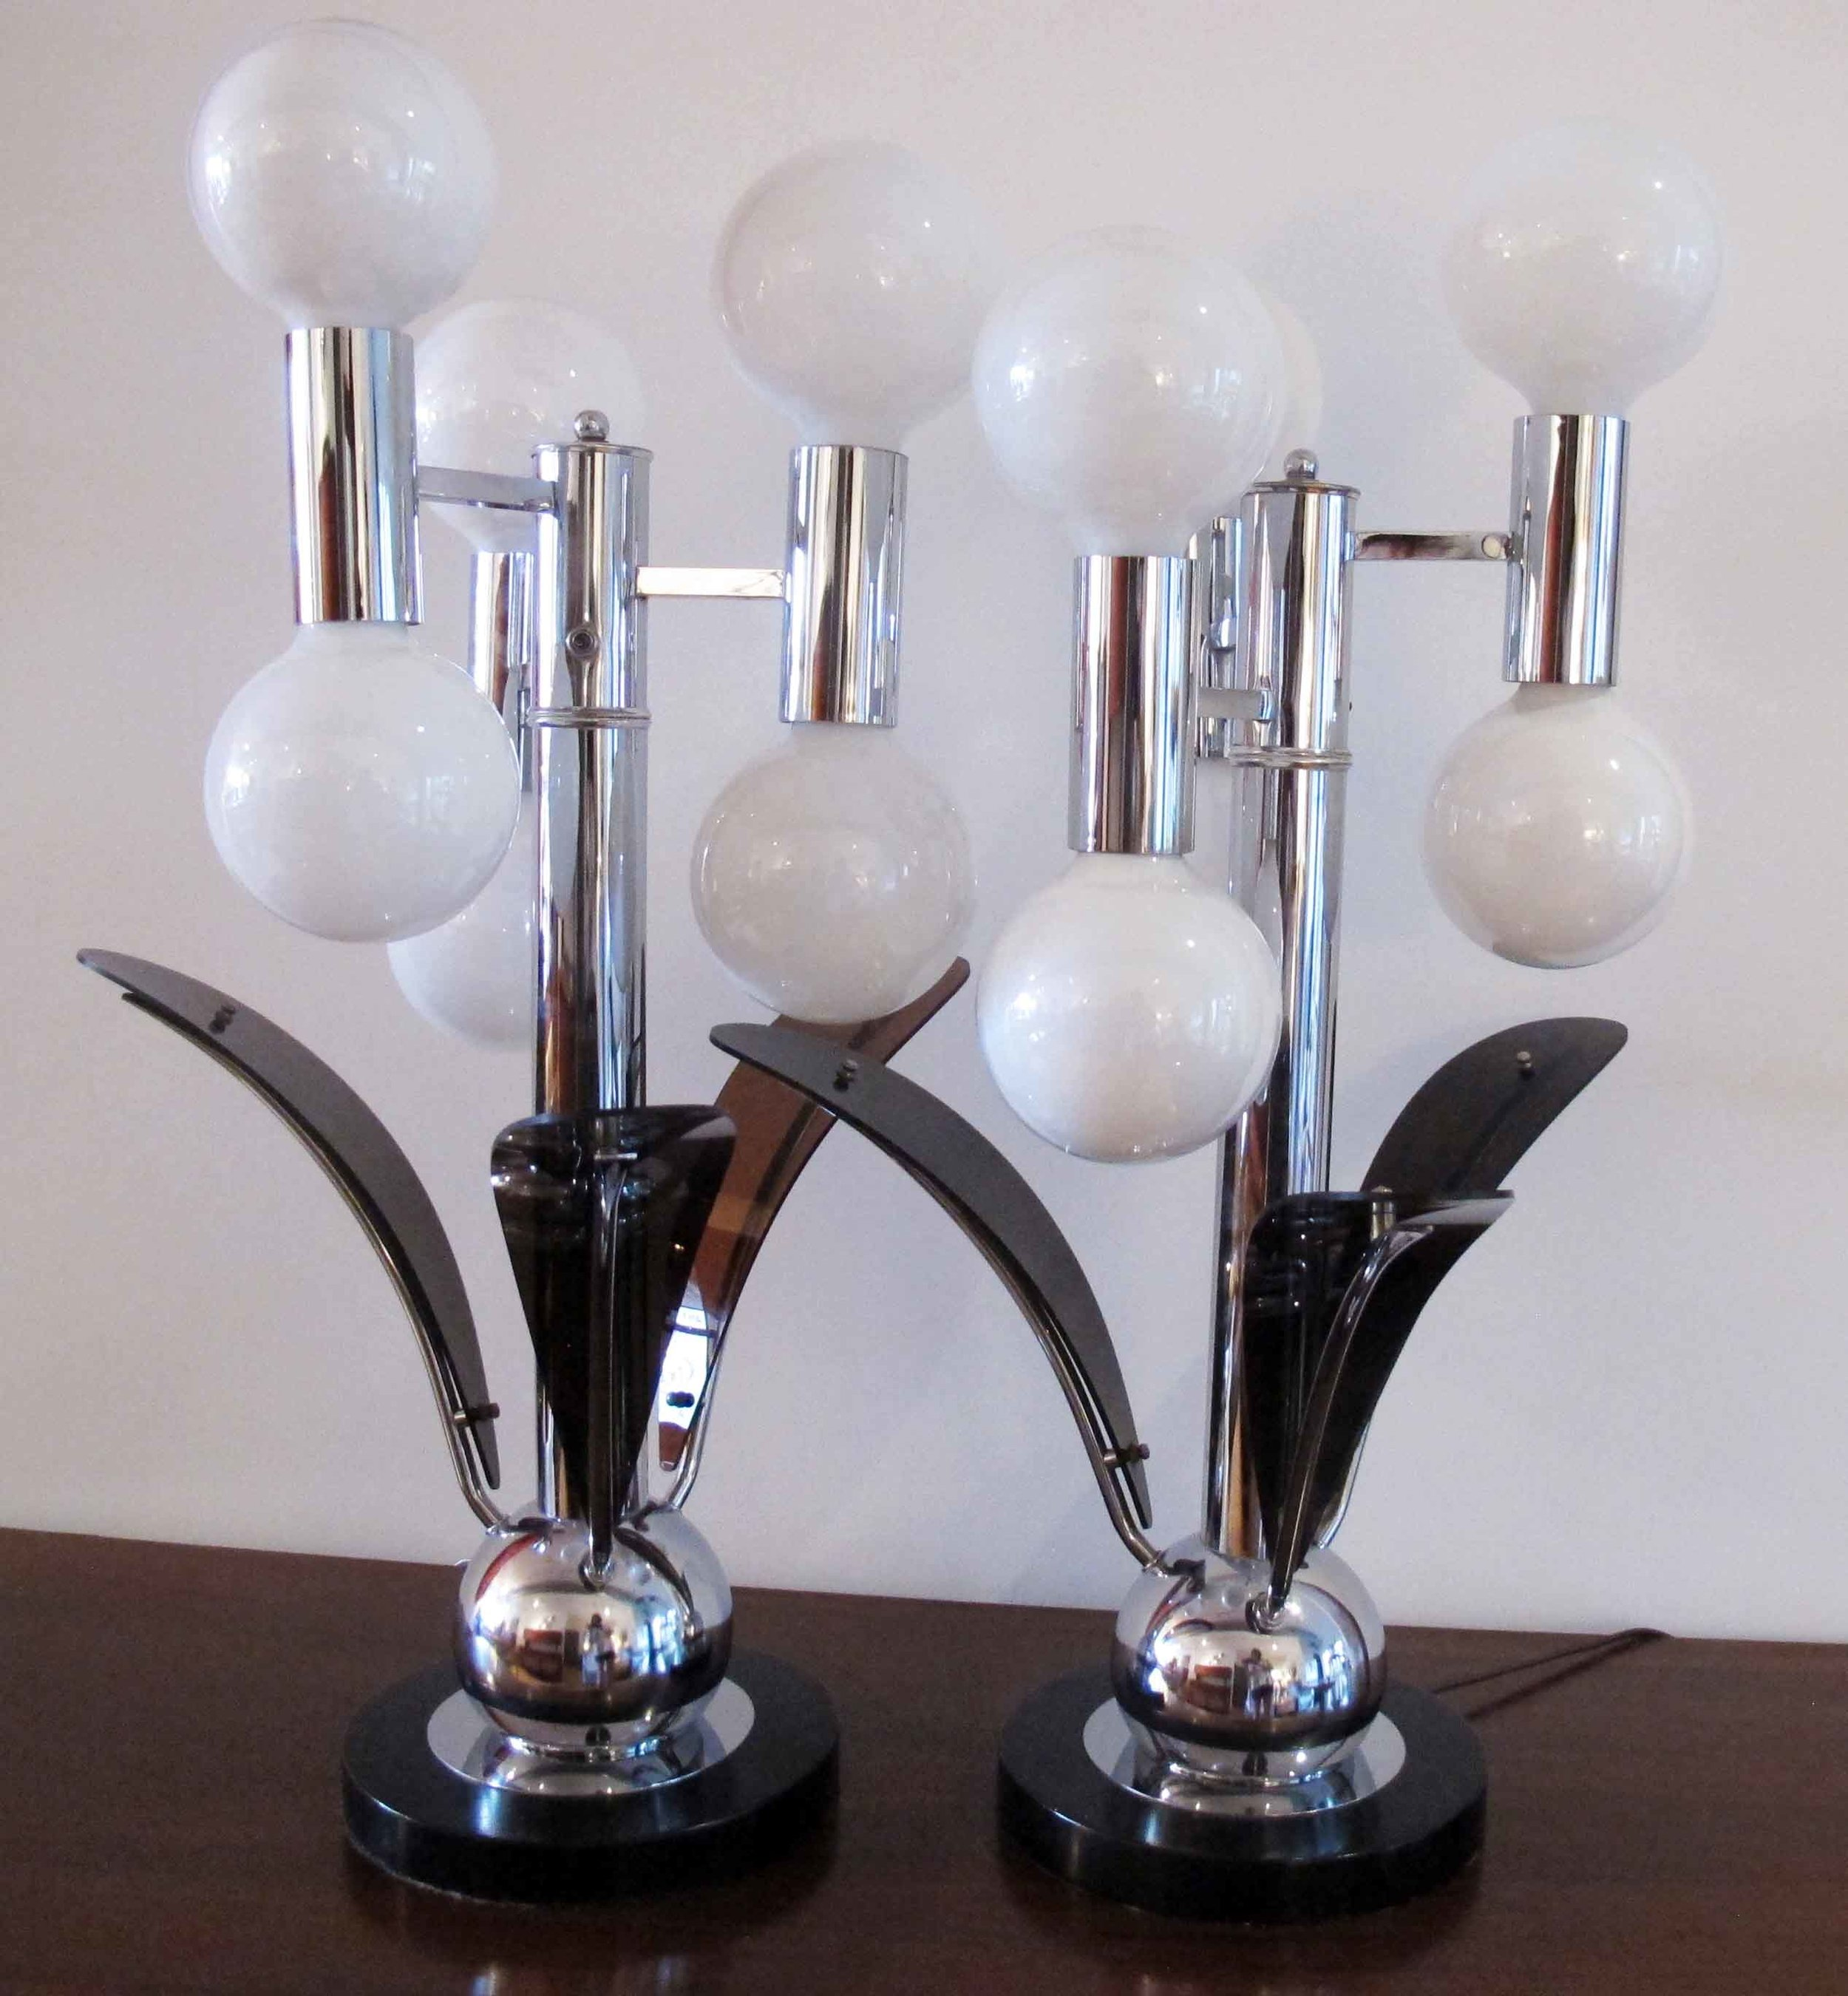 PAIR OF MID CENTURY CHROME BALL LAMPS WITH EBONY ACRYLIC SCULPTURAL PETALS